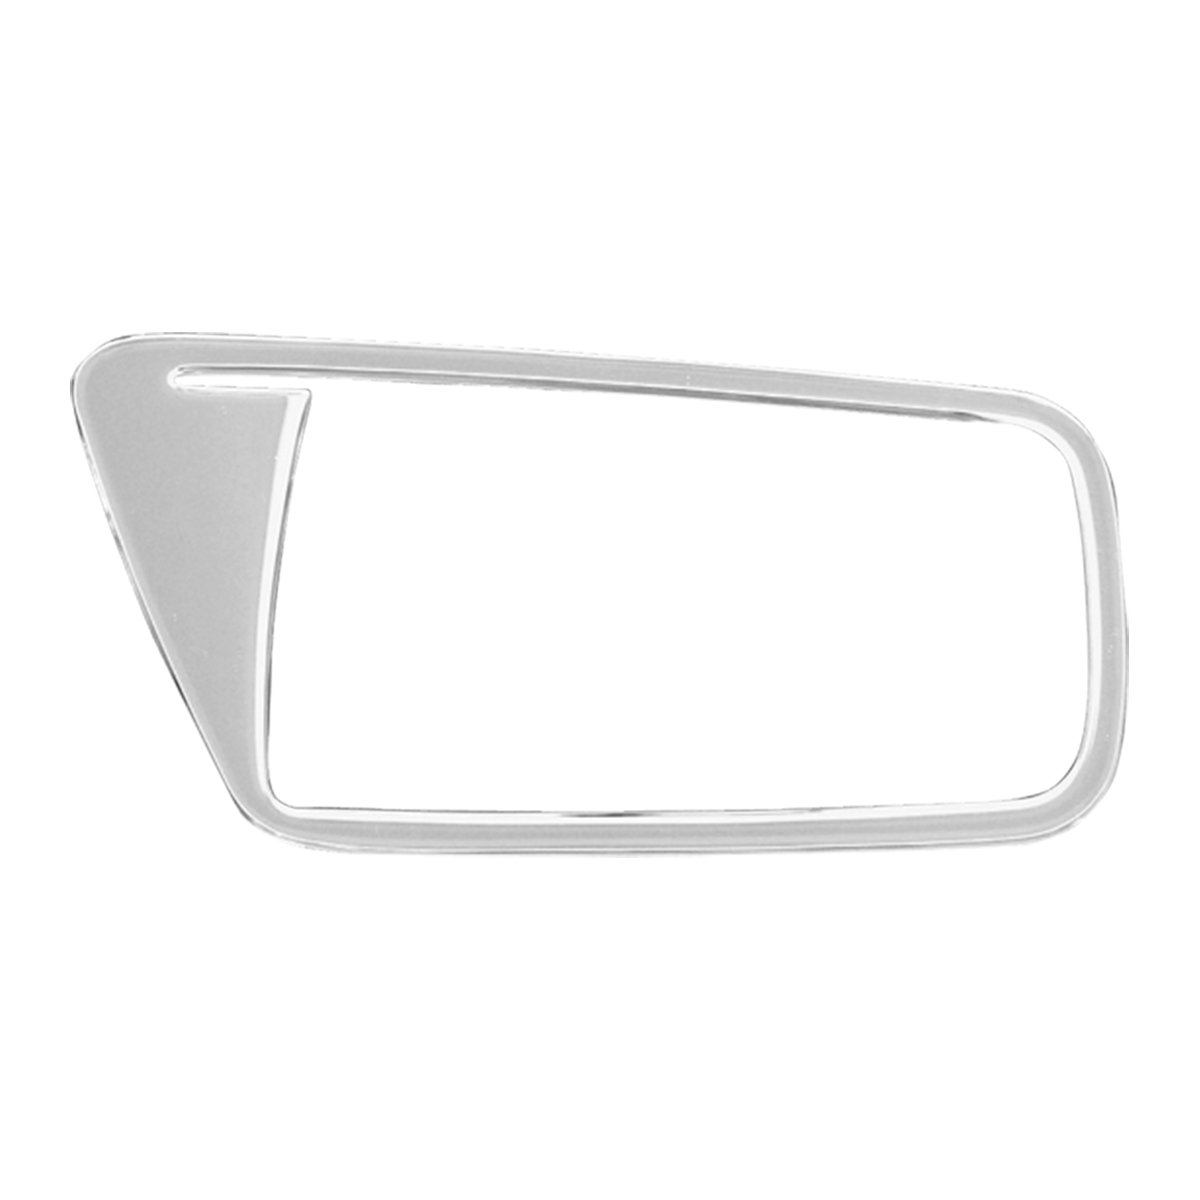 68929 Driver Side Door Ring for Kenworth W&T 2007+